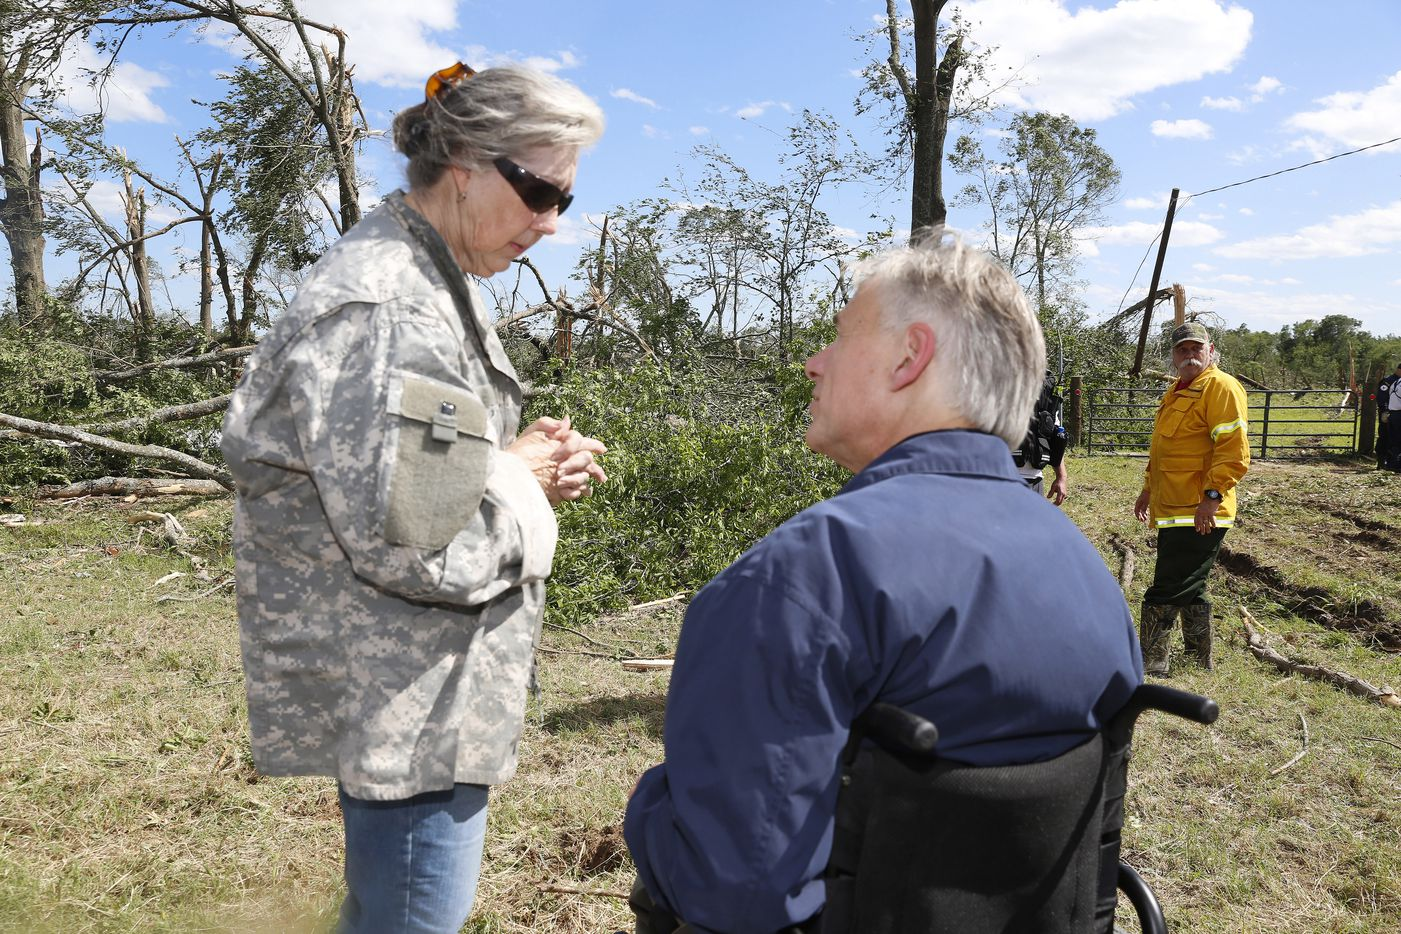 Darlynn Young explains the tornado damage of her niece's property along FM243 in Canton to Governor Greg Abbott Sunday afternoon April 30, 2017. Her niece, Patrice Reed, was not  home at the time of the tornado.